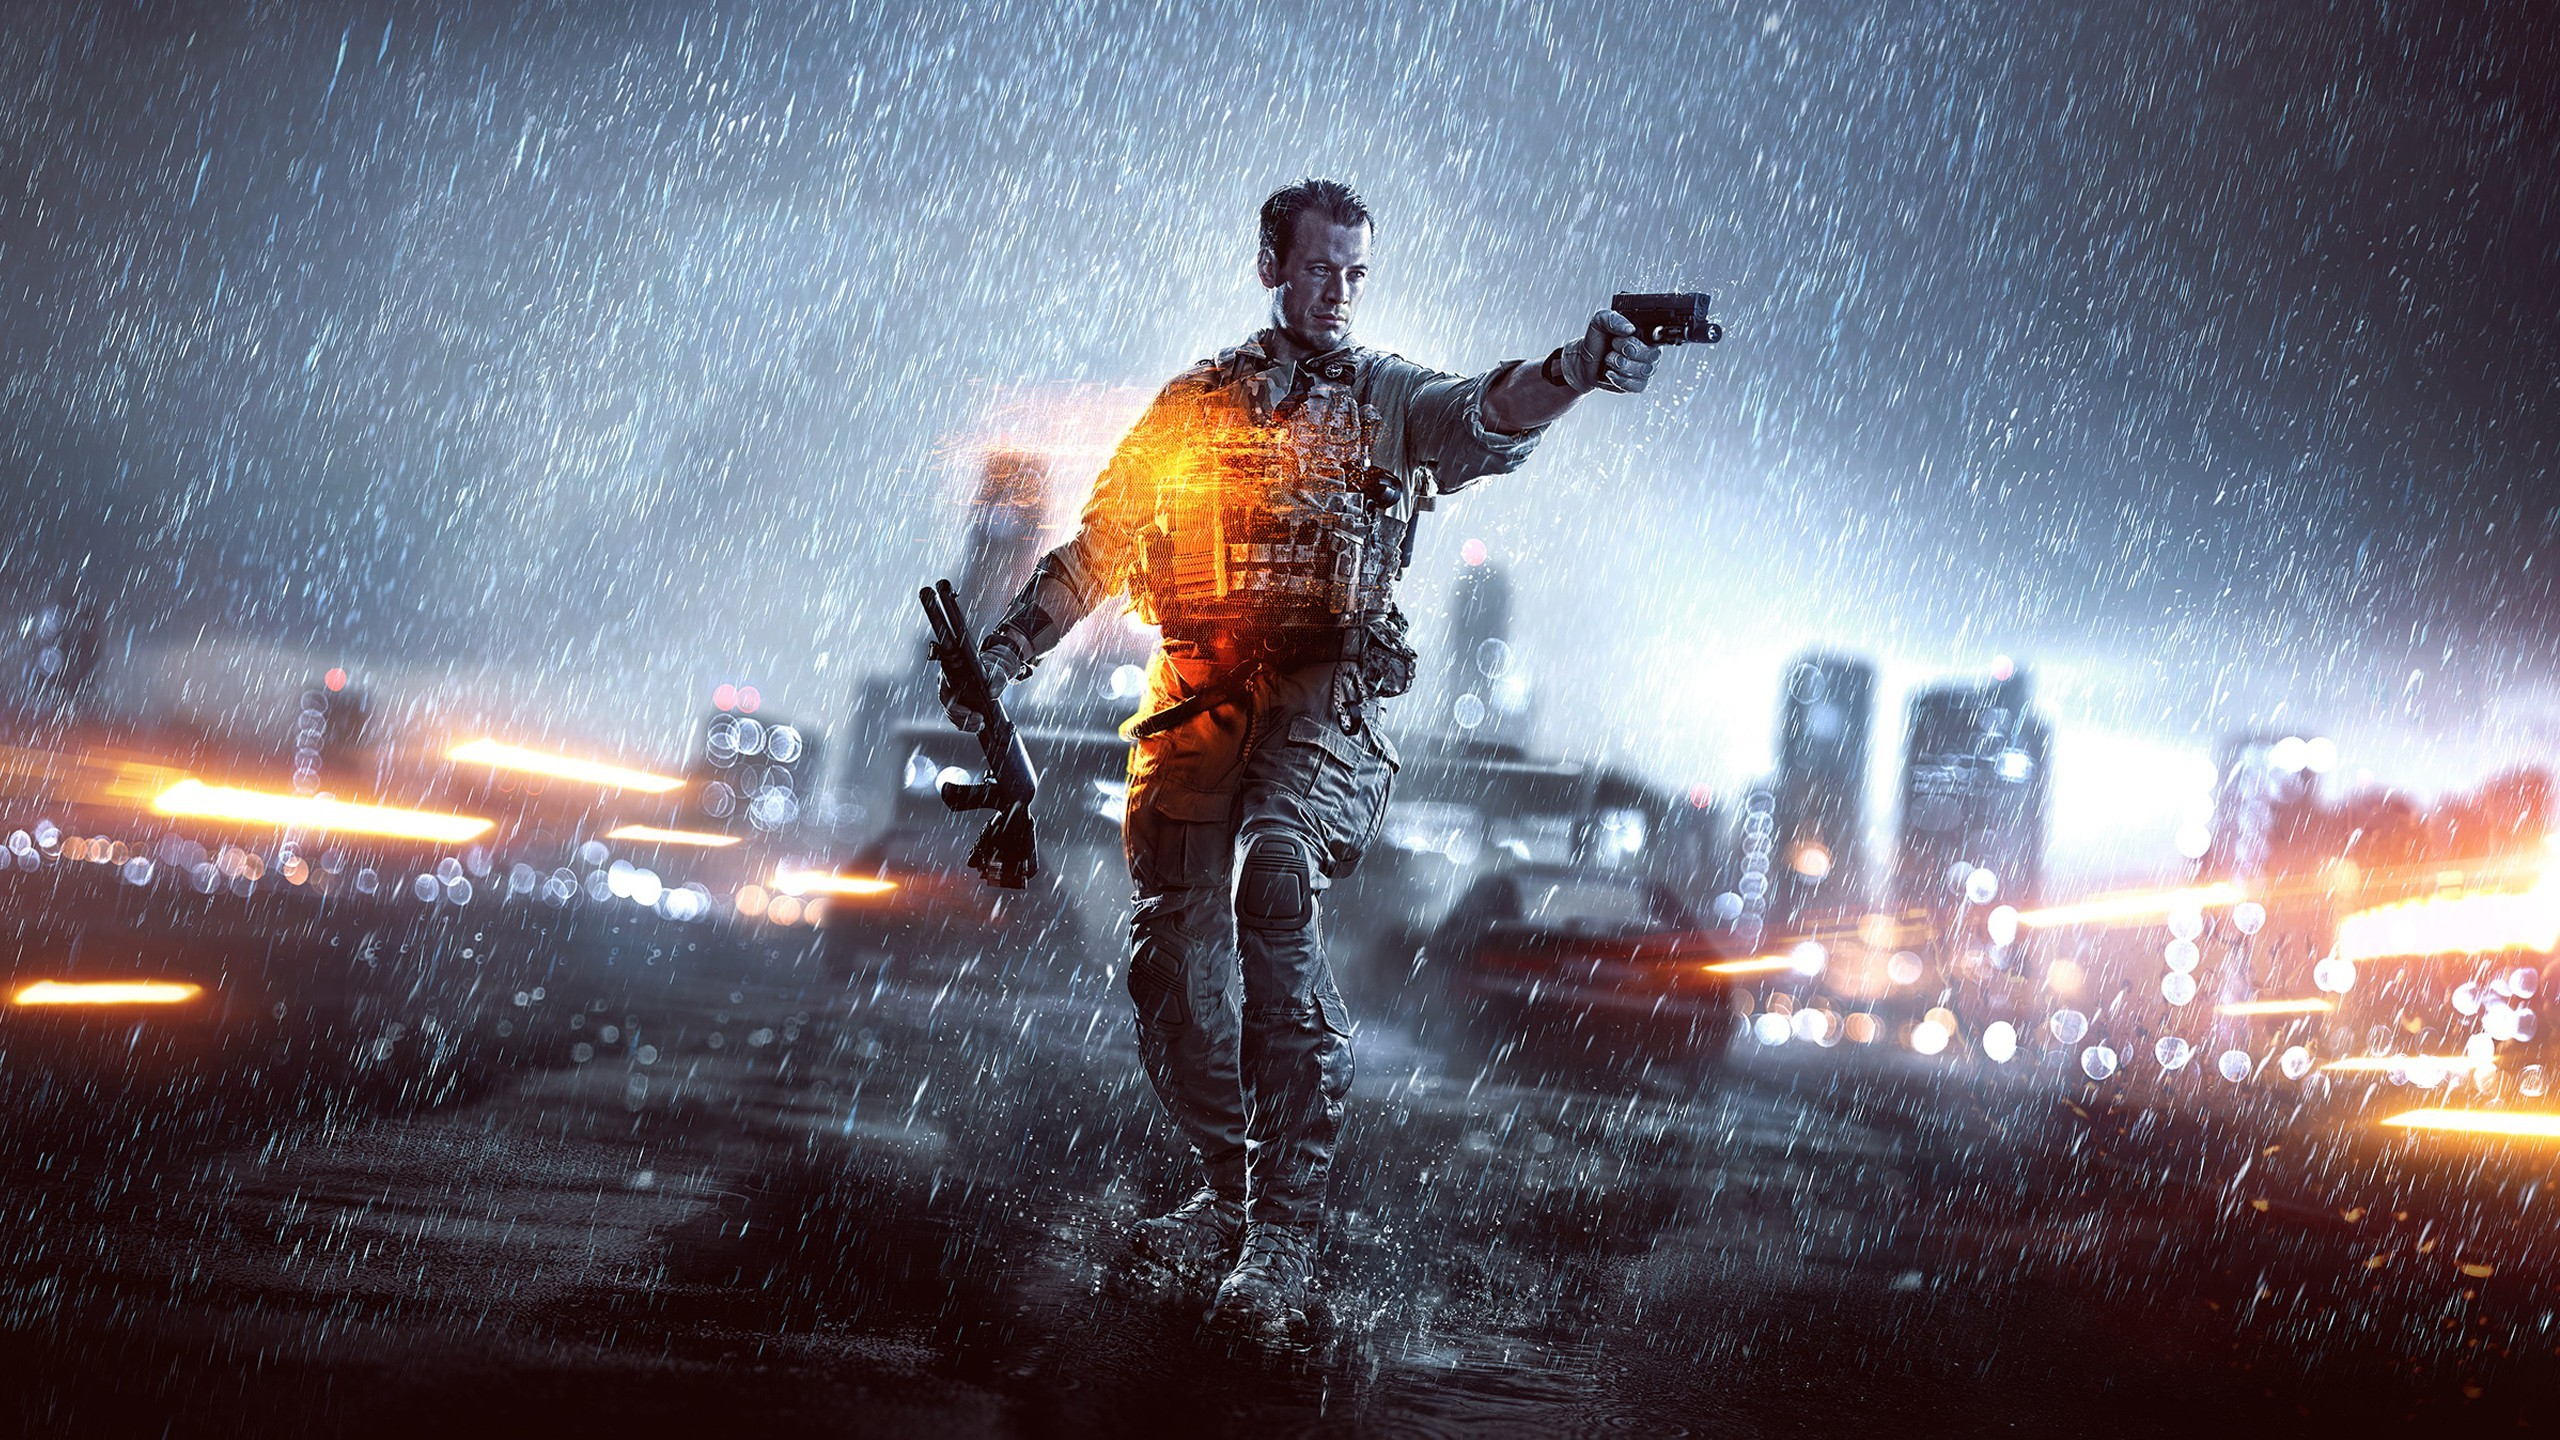 Sai Baba Animated Wallpaper For Pc Video Games Battlefield 4 Artwork Wallpapers Hd